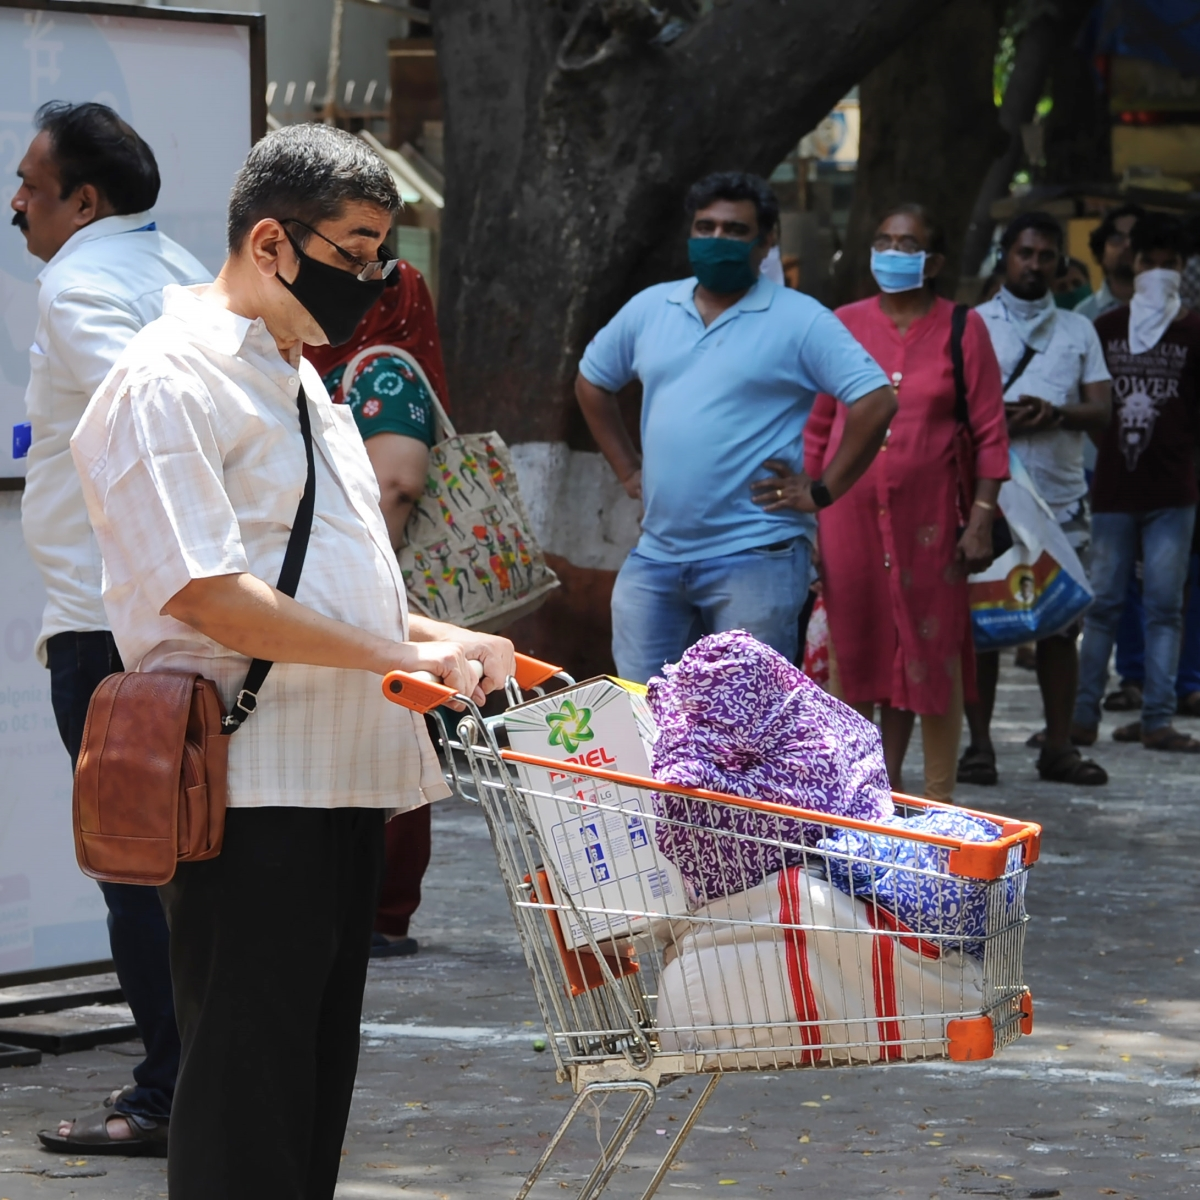 Ind-Ra lowers India's GDP estimates from 5.5% to 3.6% amid lockdown due coronavirus outbreak